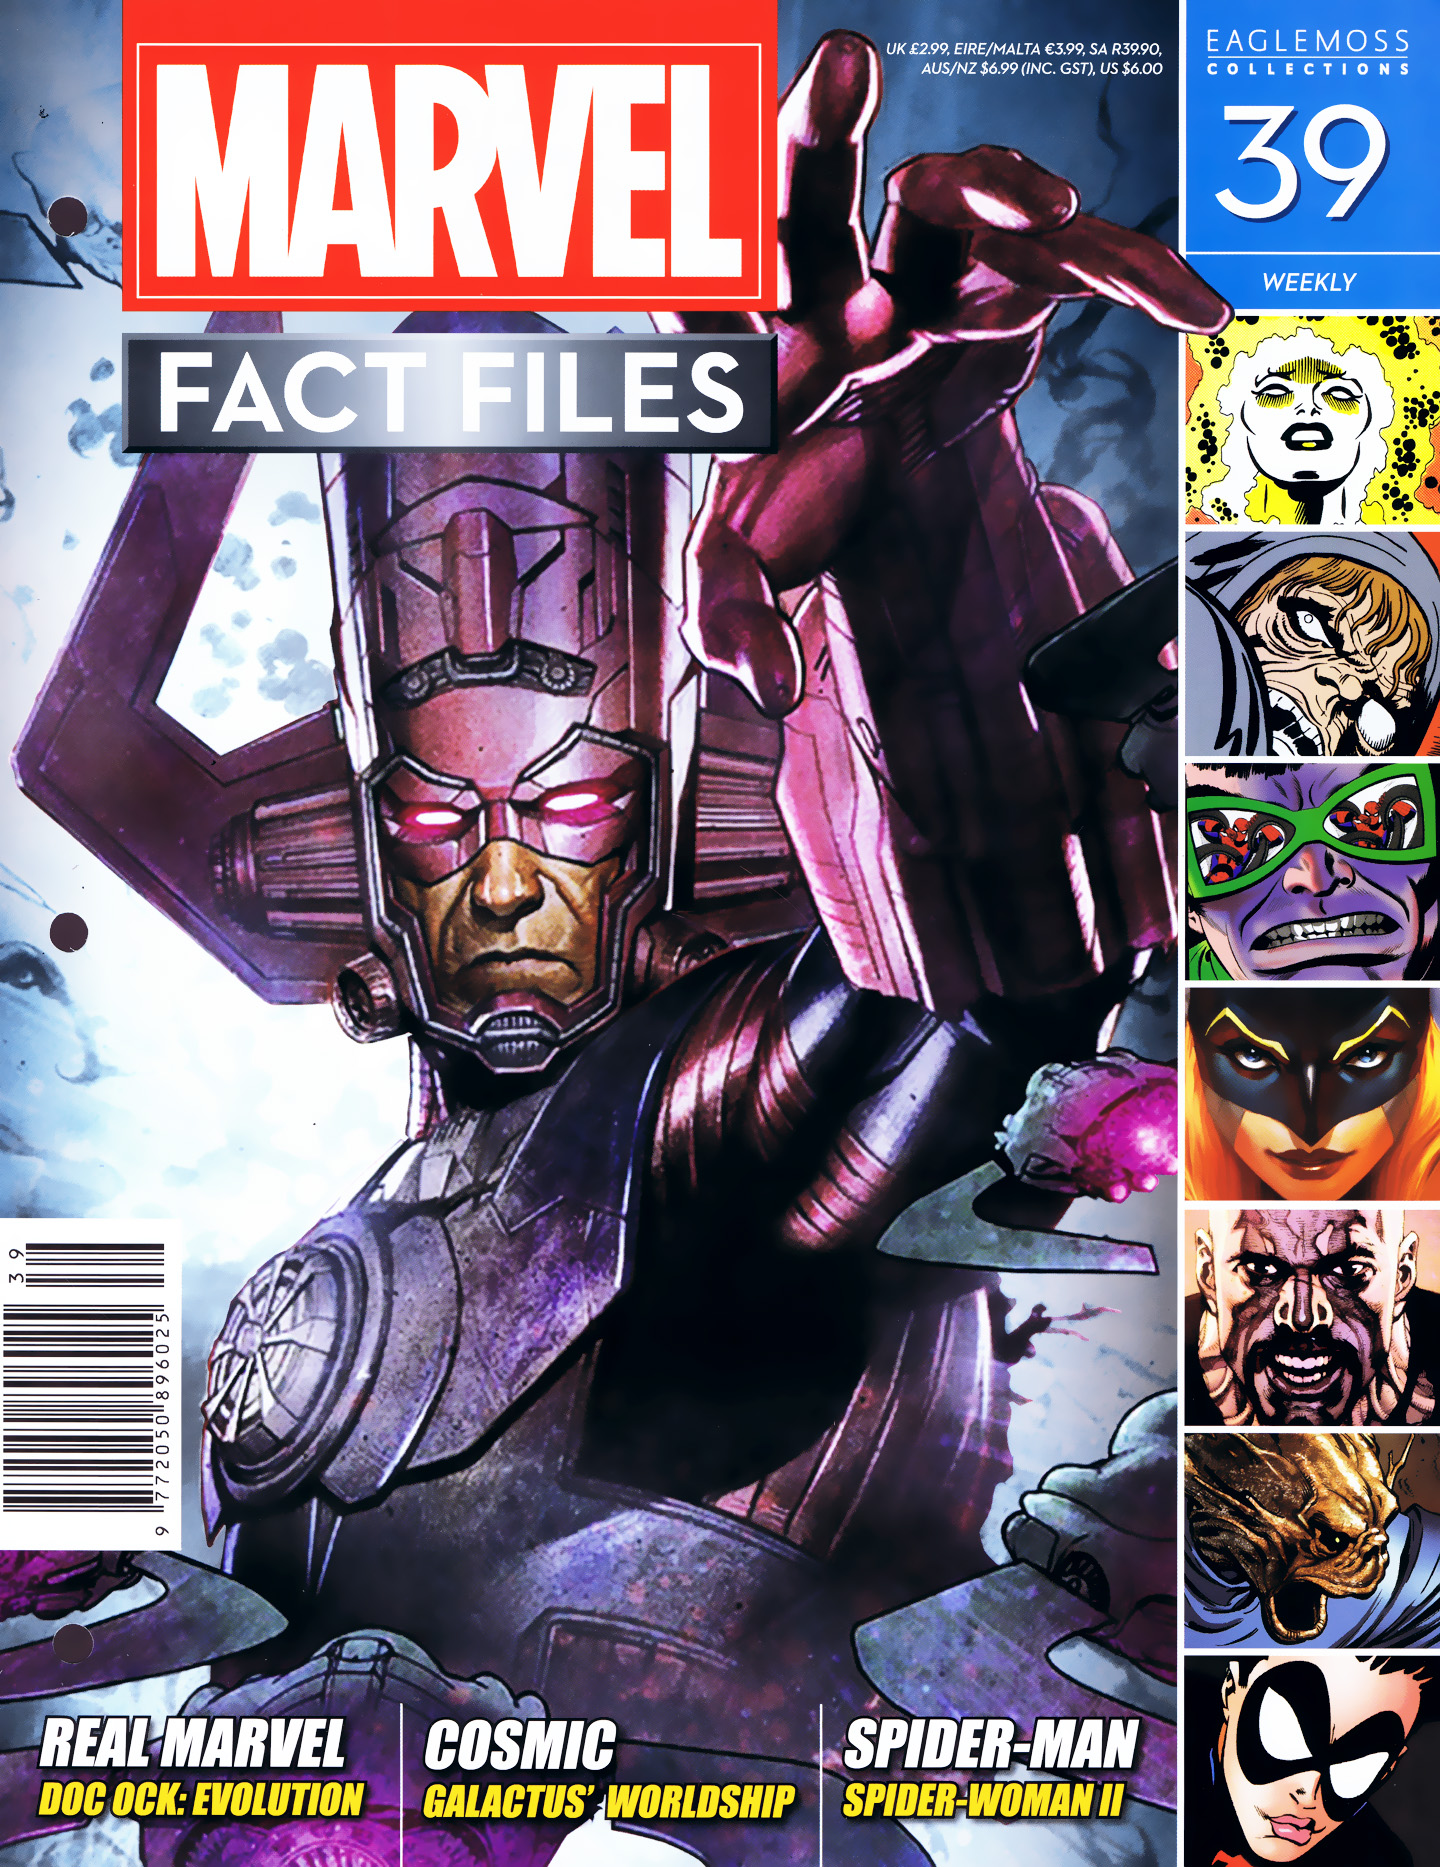 Marvel Fact Files 39 Page 1